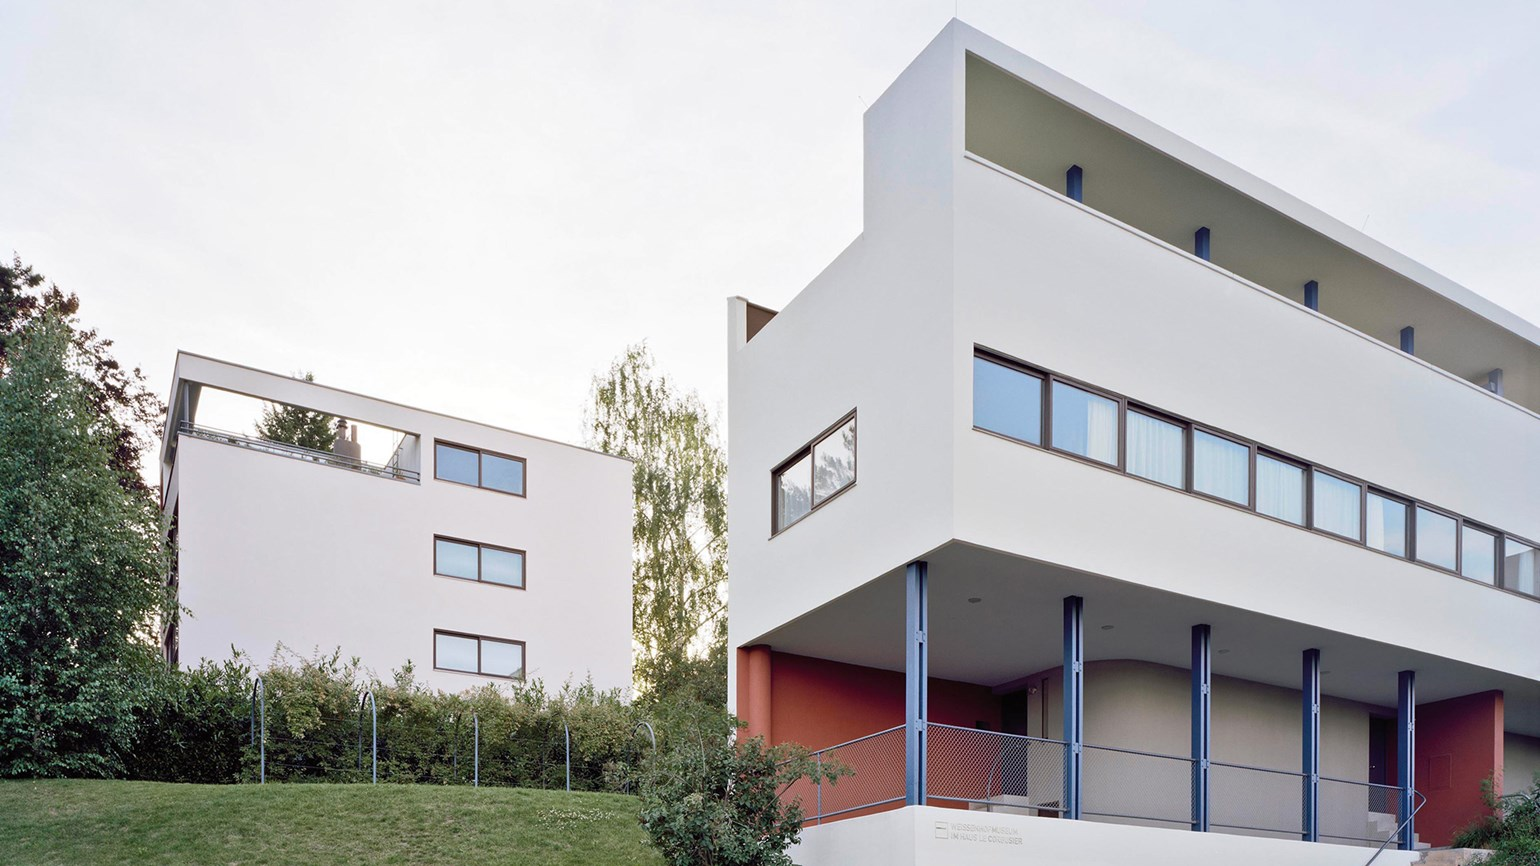 Le corbusier 39 s stuttgart houses added to germany 39 s unesco for Habitat stuttgart